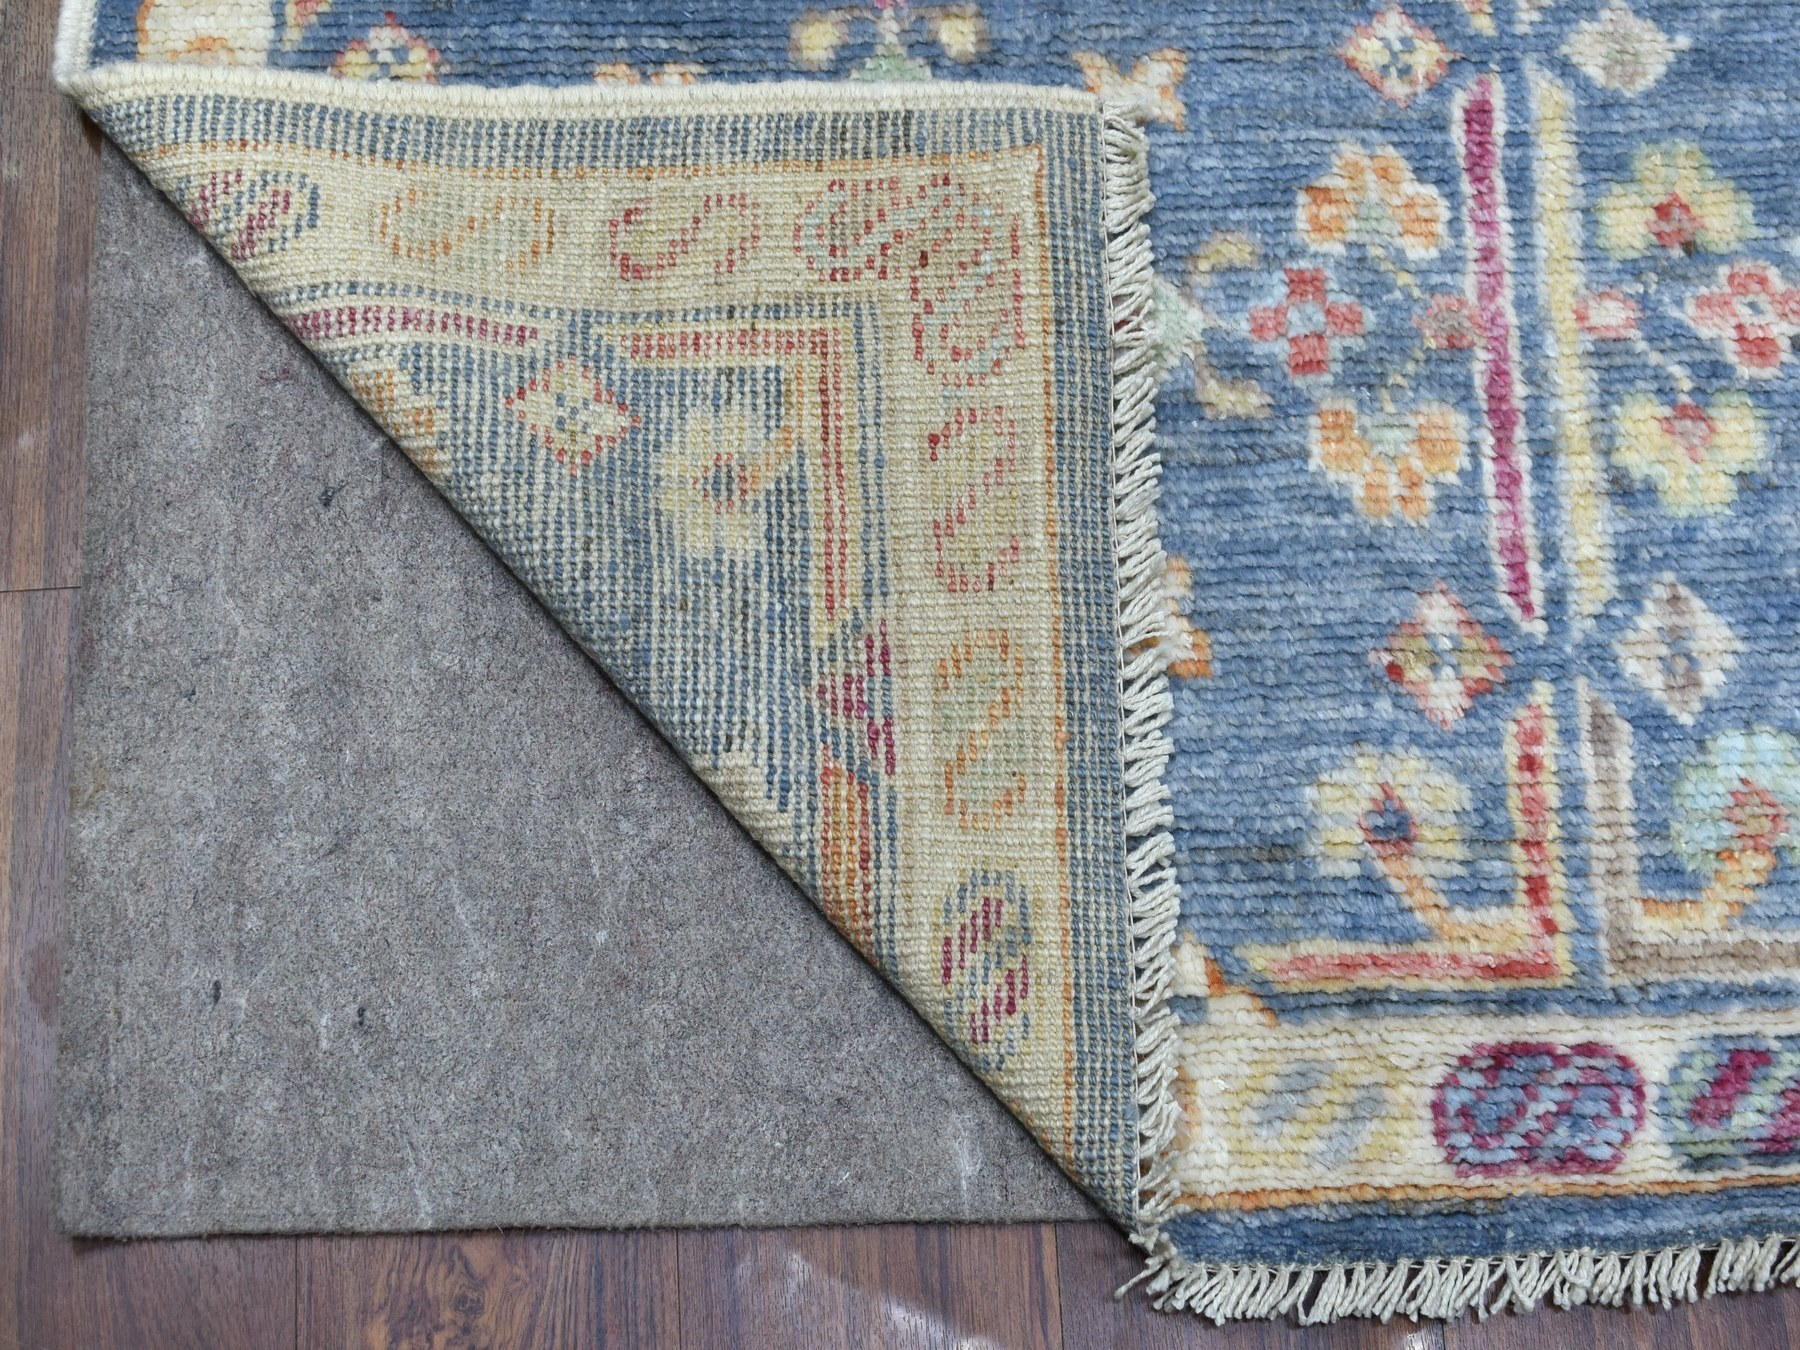 Transitional Wool Hand-Knotted Area Rug 4'3